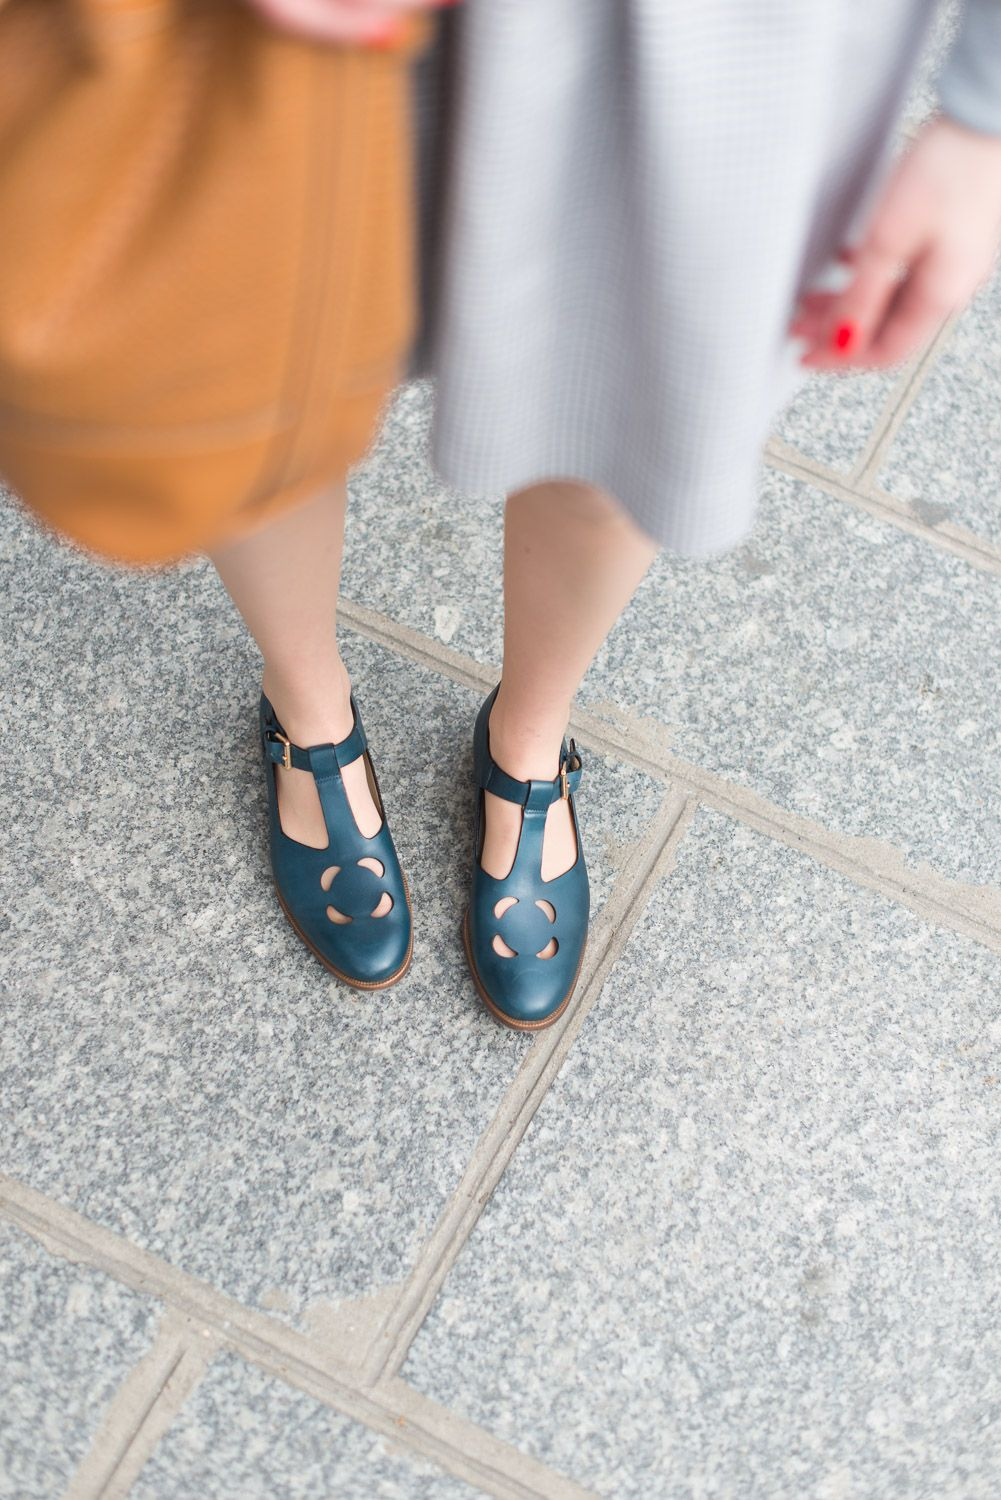 3f93178bc7b1d5 Blog-mode-Mode-And-The-City-looks-collaboration-clarks-orla-kiely (4 sur 11)